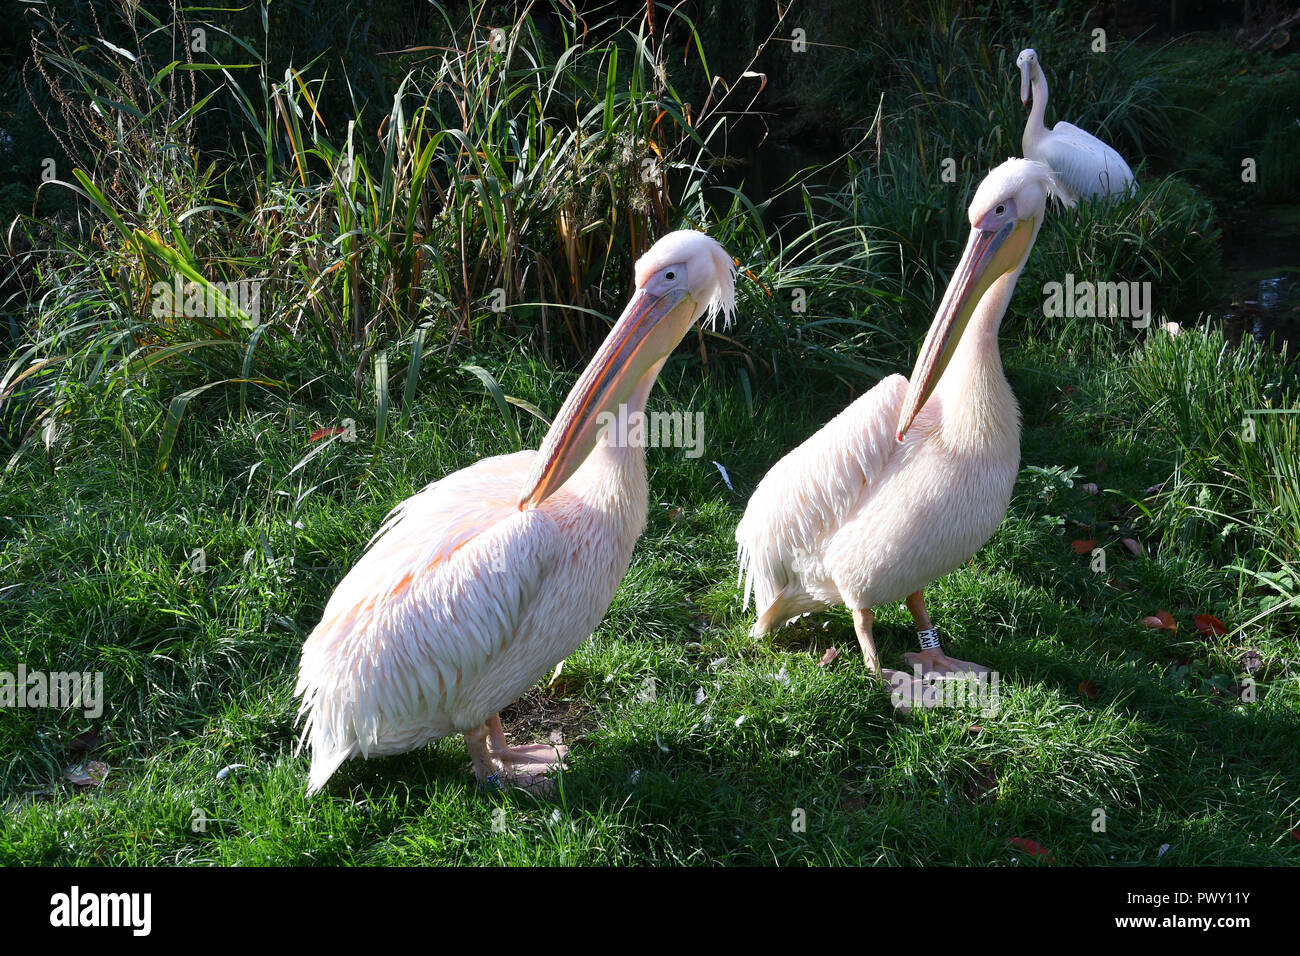 London, UK. 18th Oct 2018. Flamingos at ZLS London Zoo's Asiatic lions celebrate the advent of autumn with scented treat, London, UK. 18 October 2018. 18 October 2018. Credit: Picture Capital/Alamy Live News - Stock Image